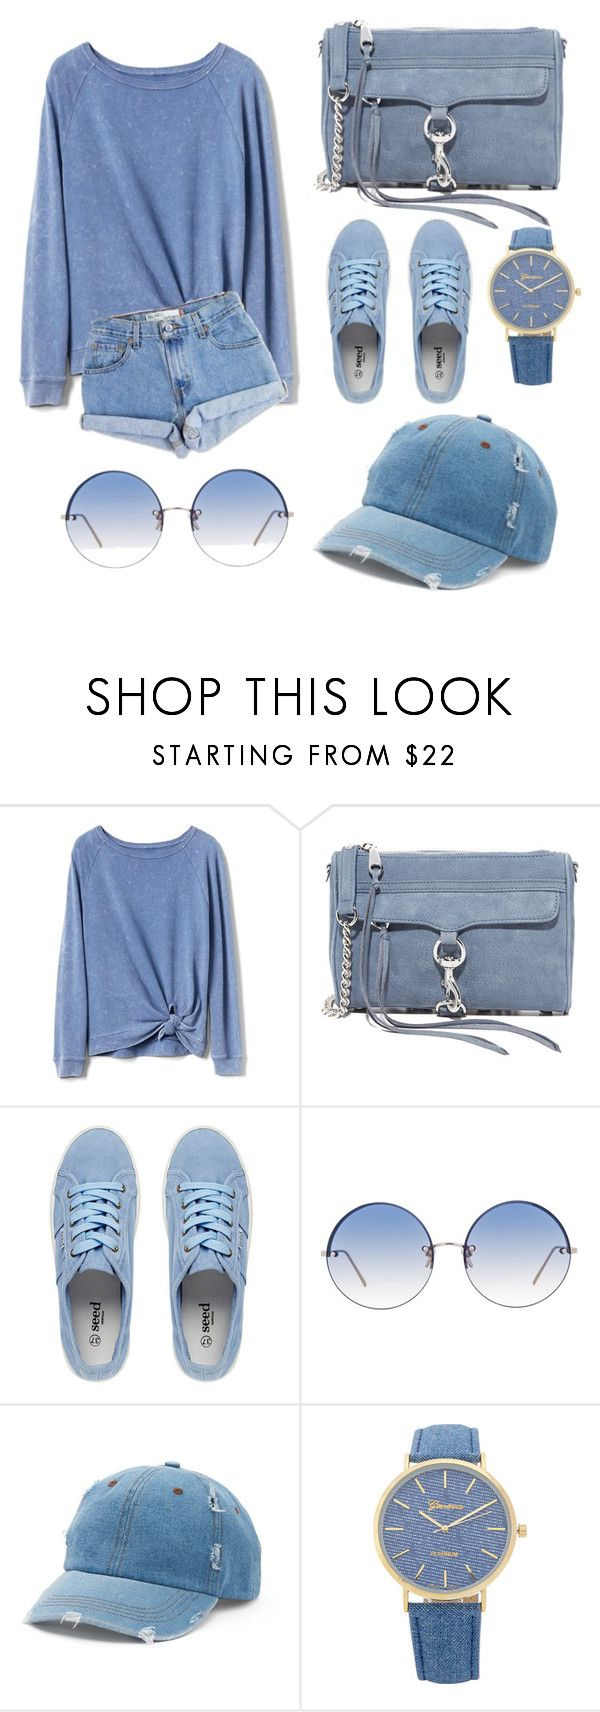 """for a sunny day yet chilly weather, your casual (blue) sunday afternoon look."" by scrindipity ❤ liked on Polyvore featuring Gap, Levi's, Rebecca Minkoff, Linda Farrow and Mudd"